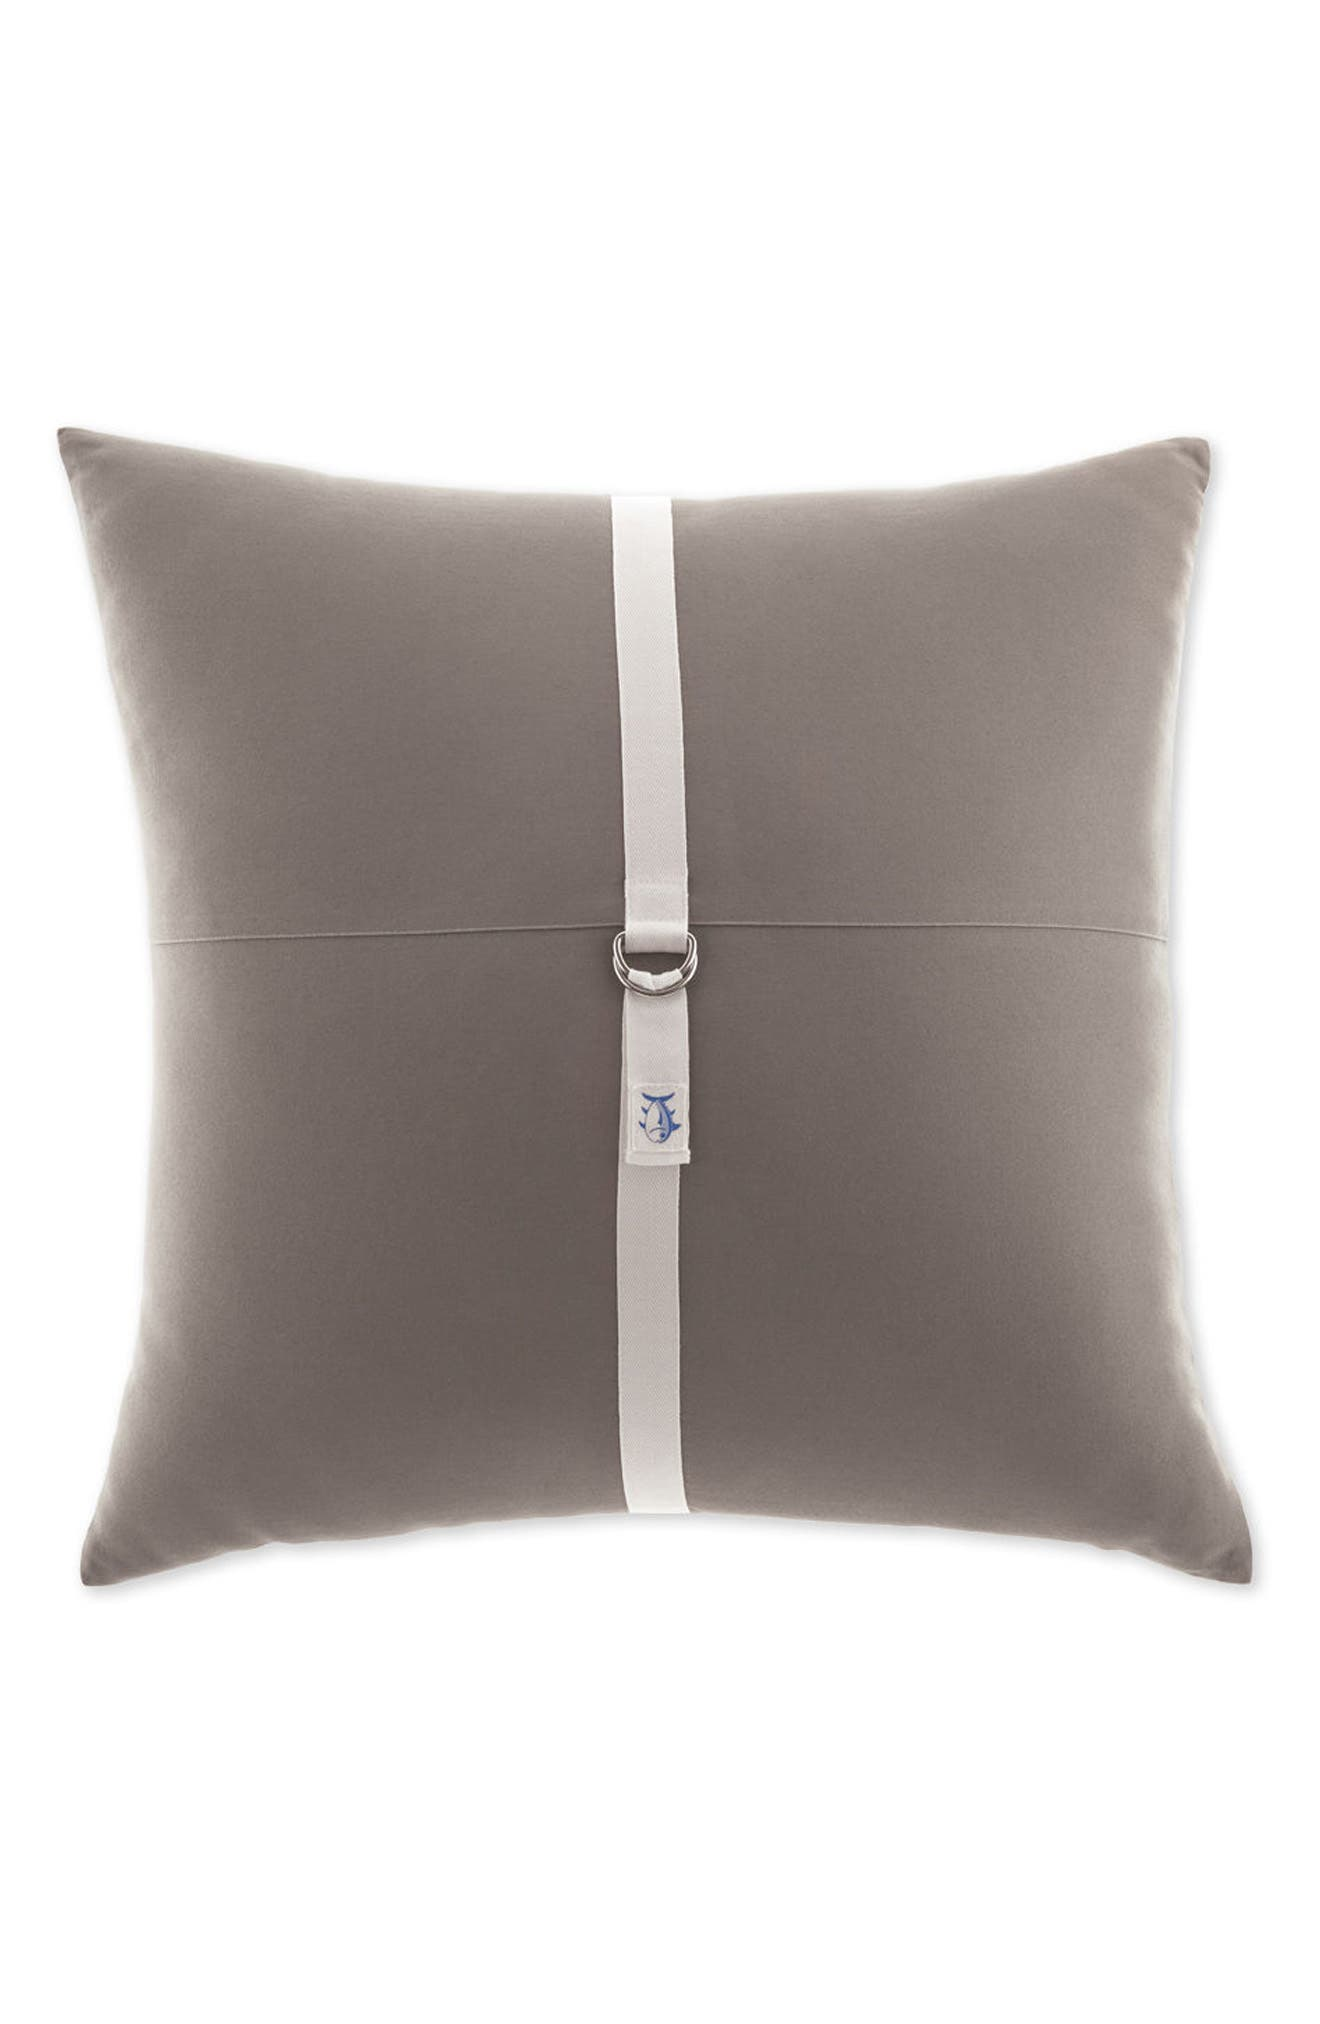 Starboard Nautical Accent Pillow,                         Main,                         color, Gray